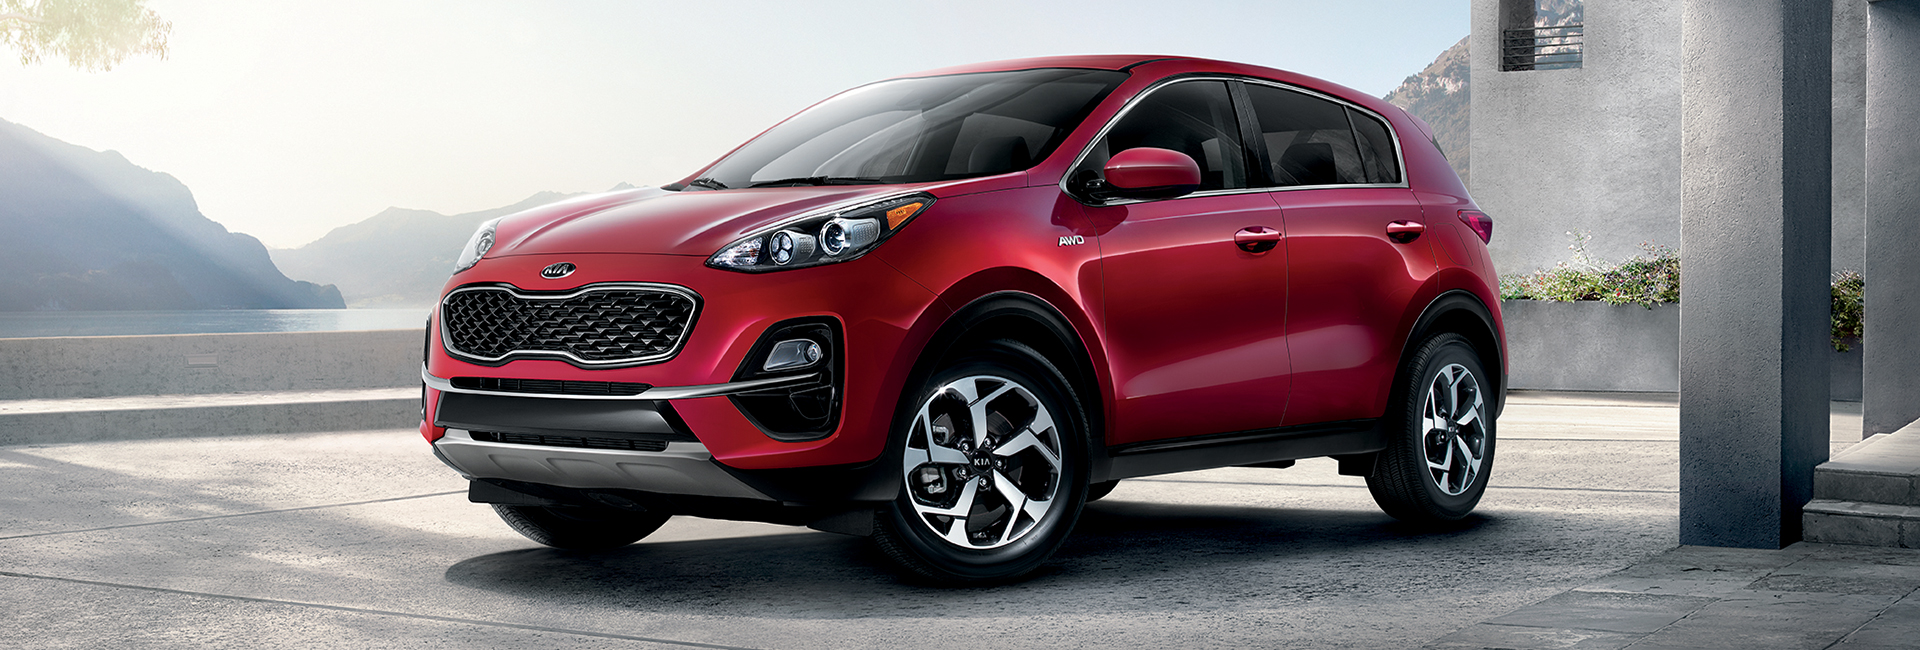 Picture of the Kia sportage